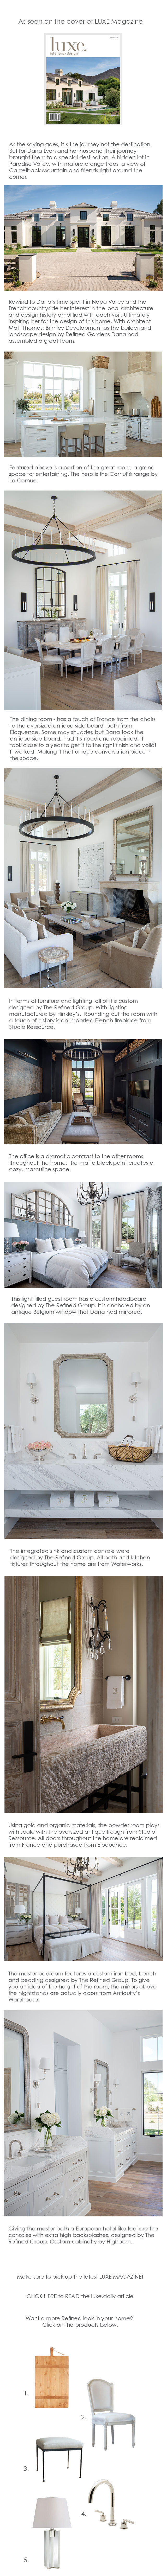 1. Pottery Barn Pine Wood Cutting Board  2.  Eloquence Dining Chair  3. Custom Stool by The Refined Group 4.  Waterworks Henry Collection  5.  Ralph Lauren Table Lamp